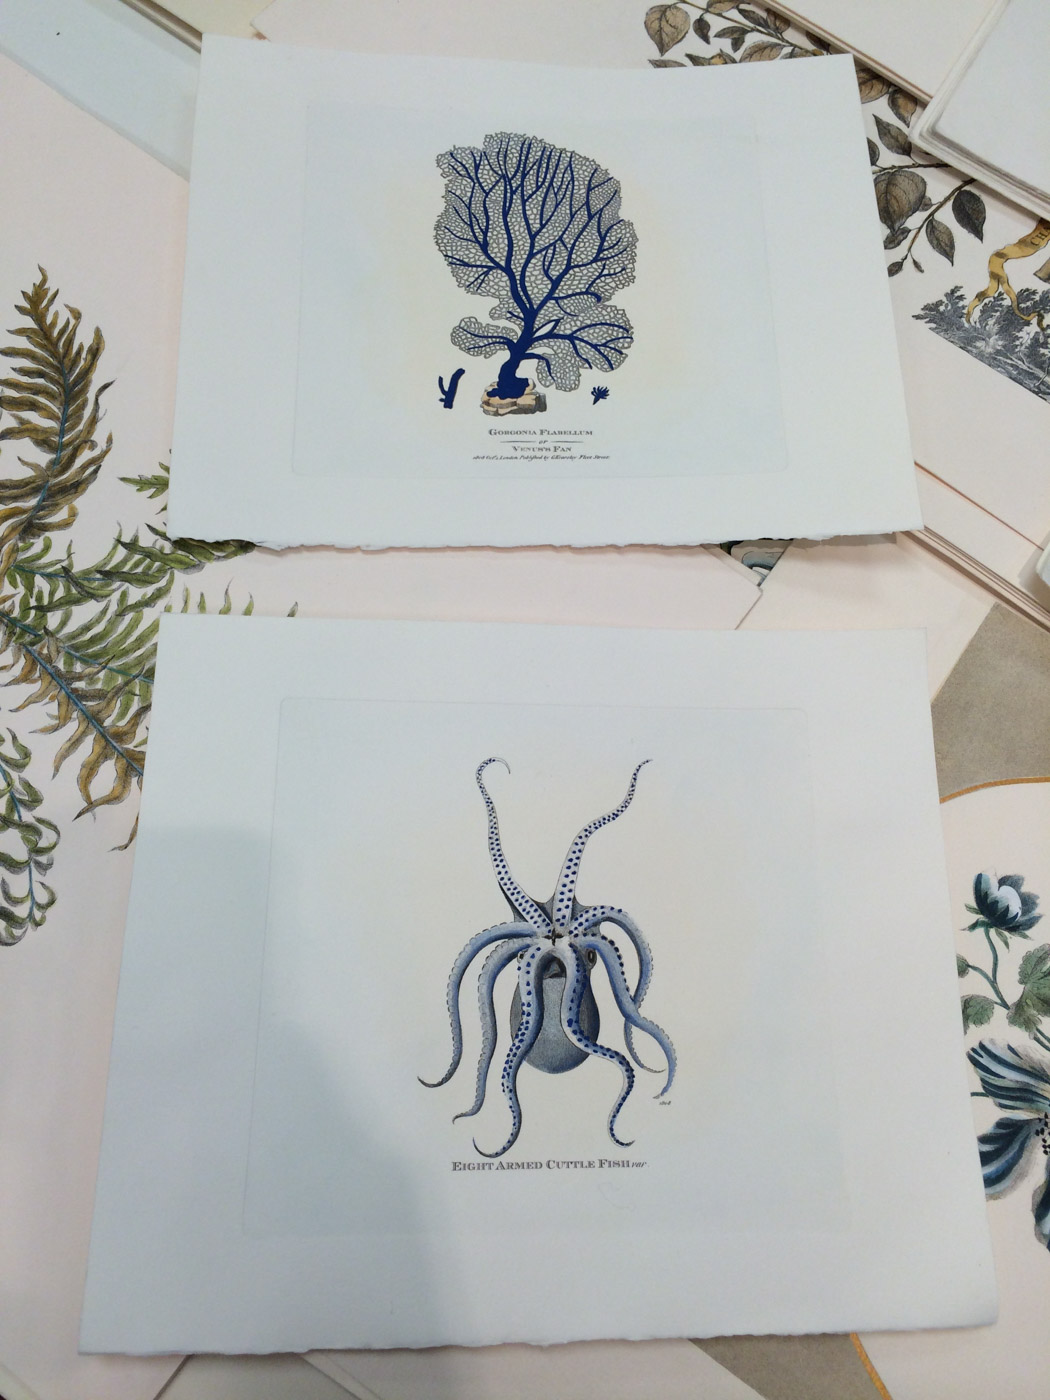 Lo Forti  is a family owned business that makes the most beautiful hand-colored prints on fine paper. Check out the detail on these. The cute little octopus and coral came home with me!